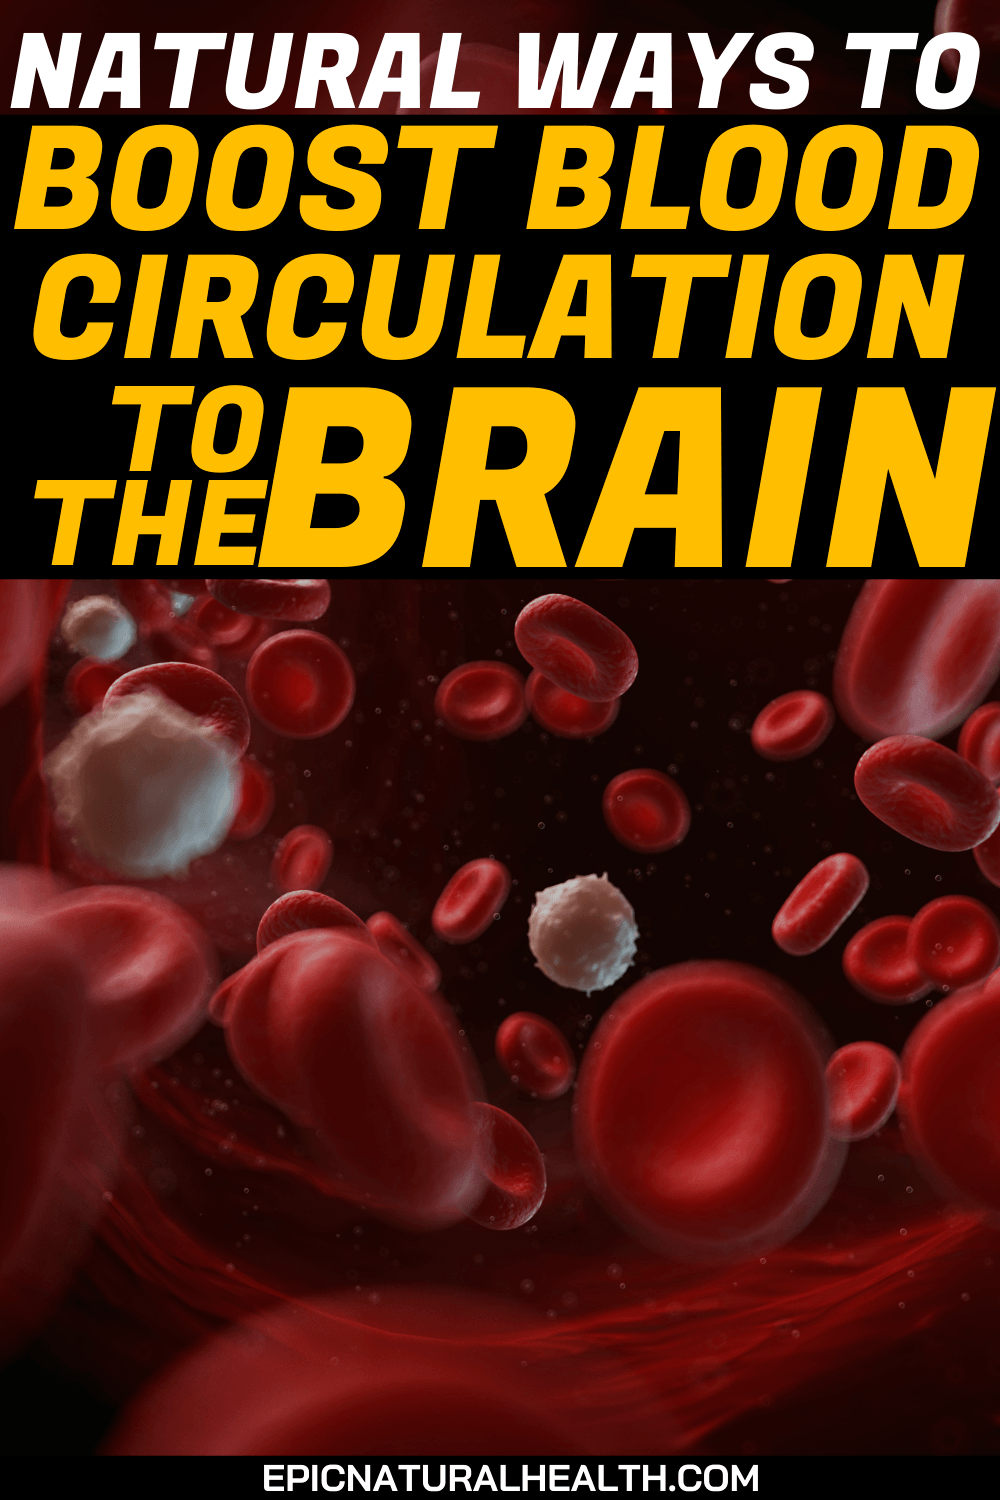 Natural Ways to Boost Blood Circulation to the Brain